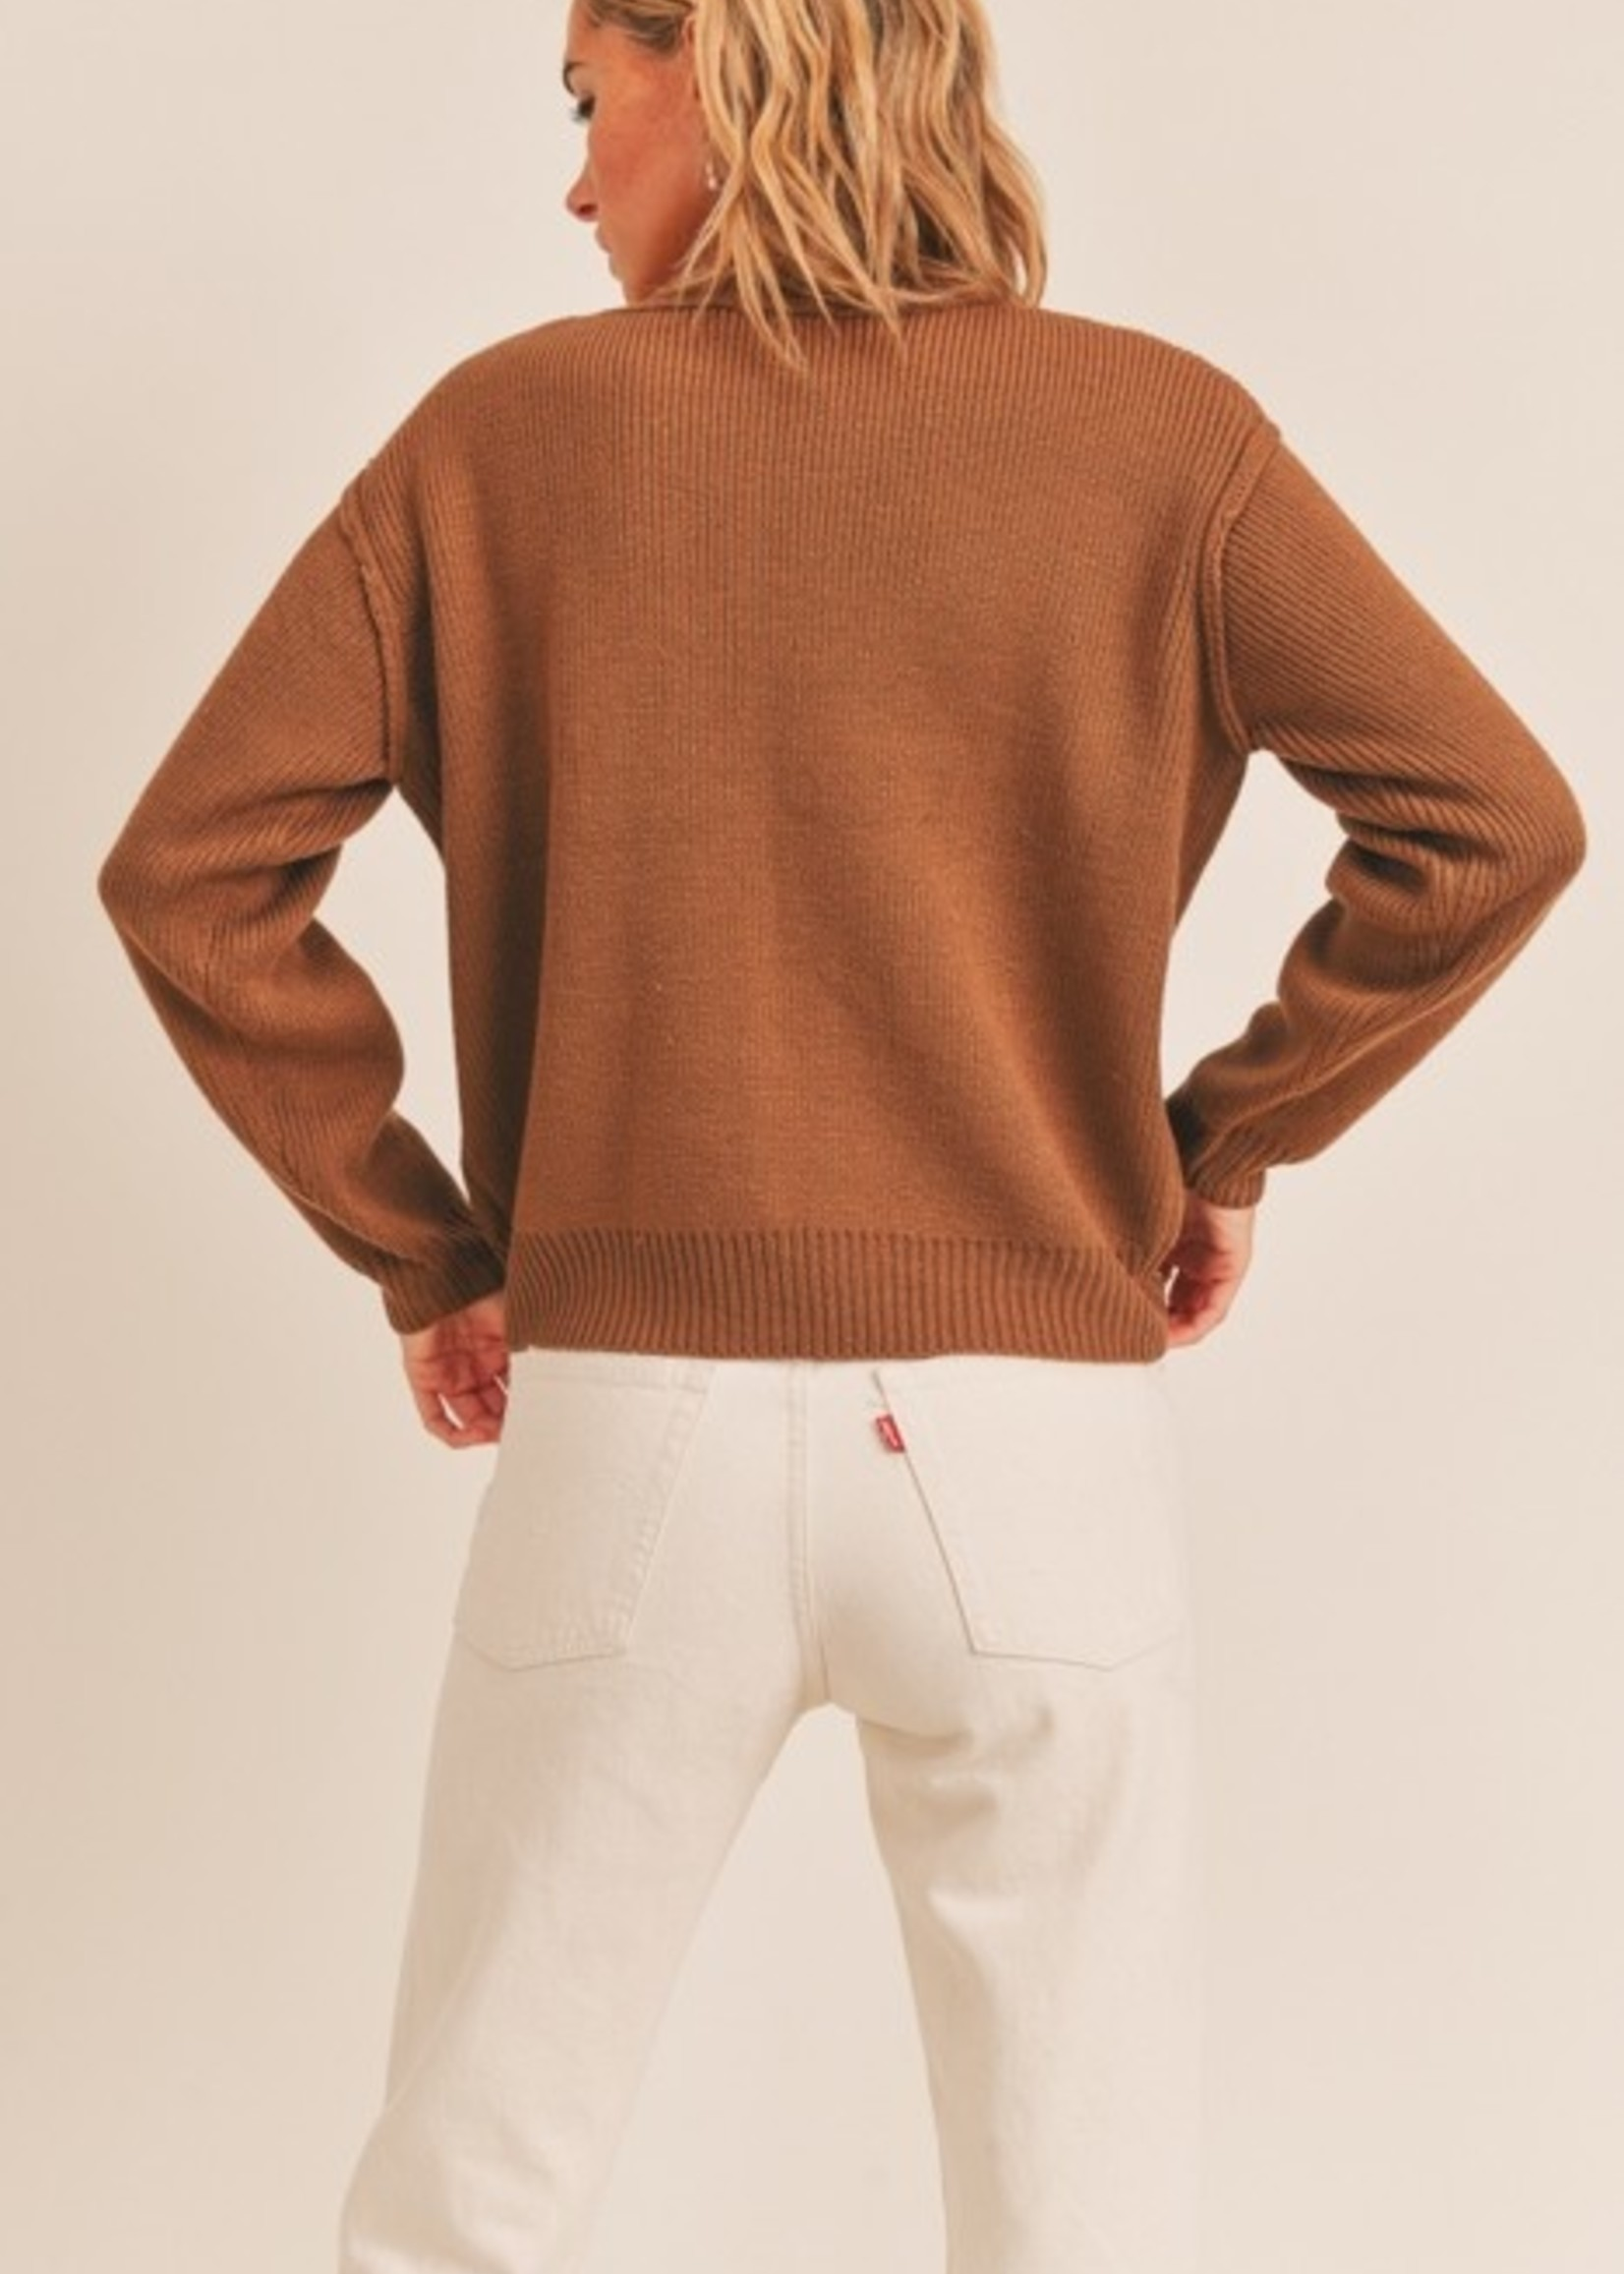 Long Sleeve Sweater with Exposed Seam - Coffee